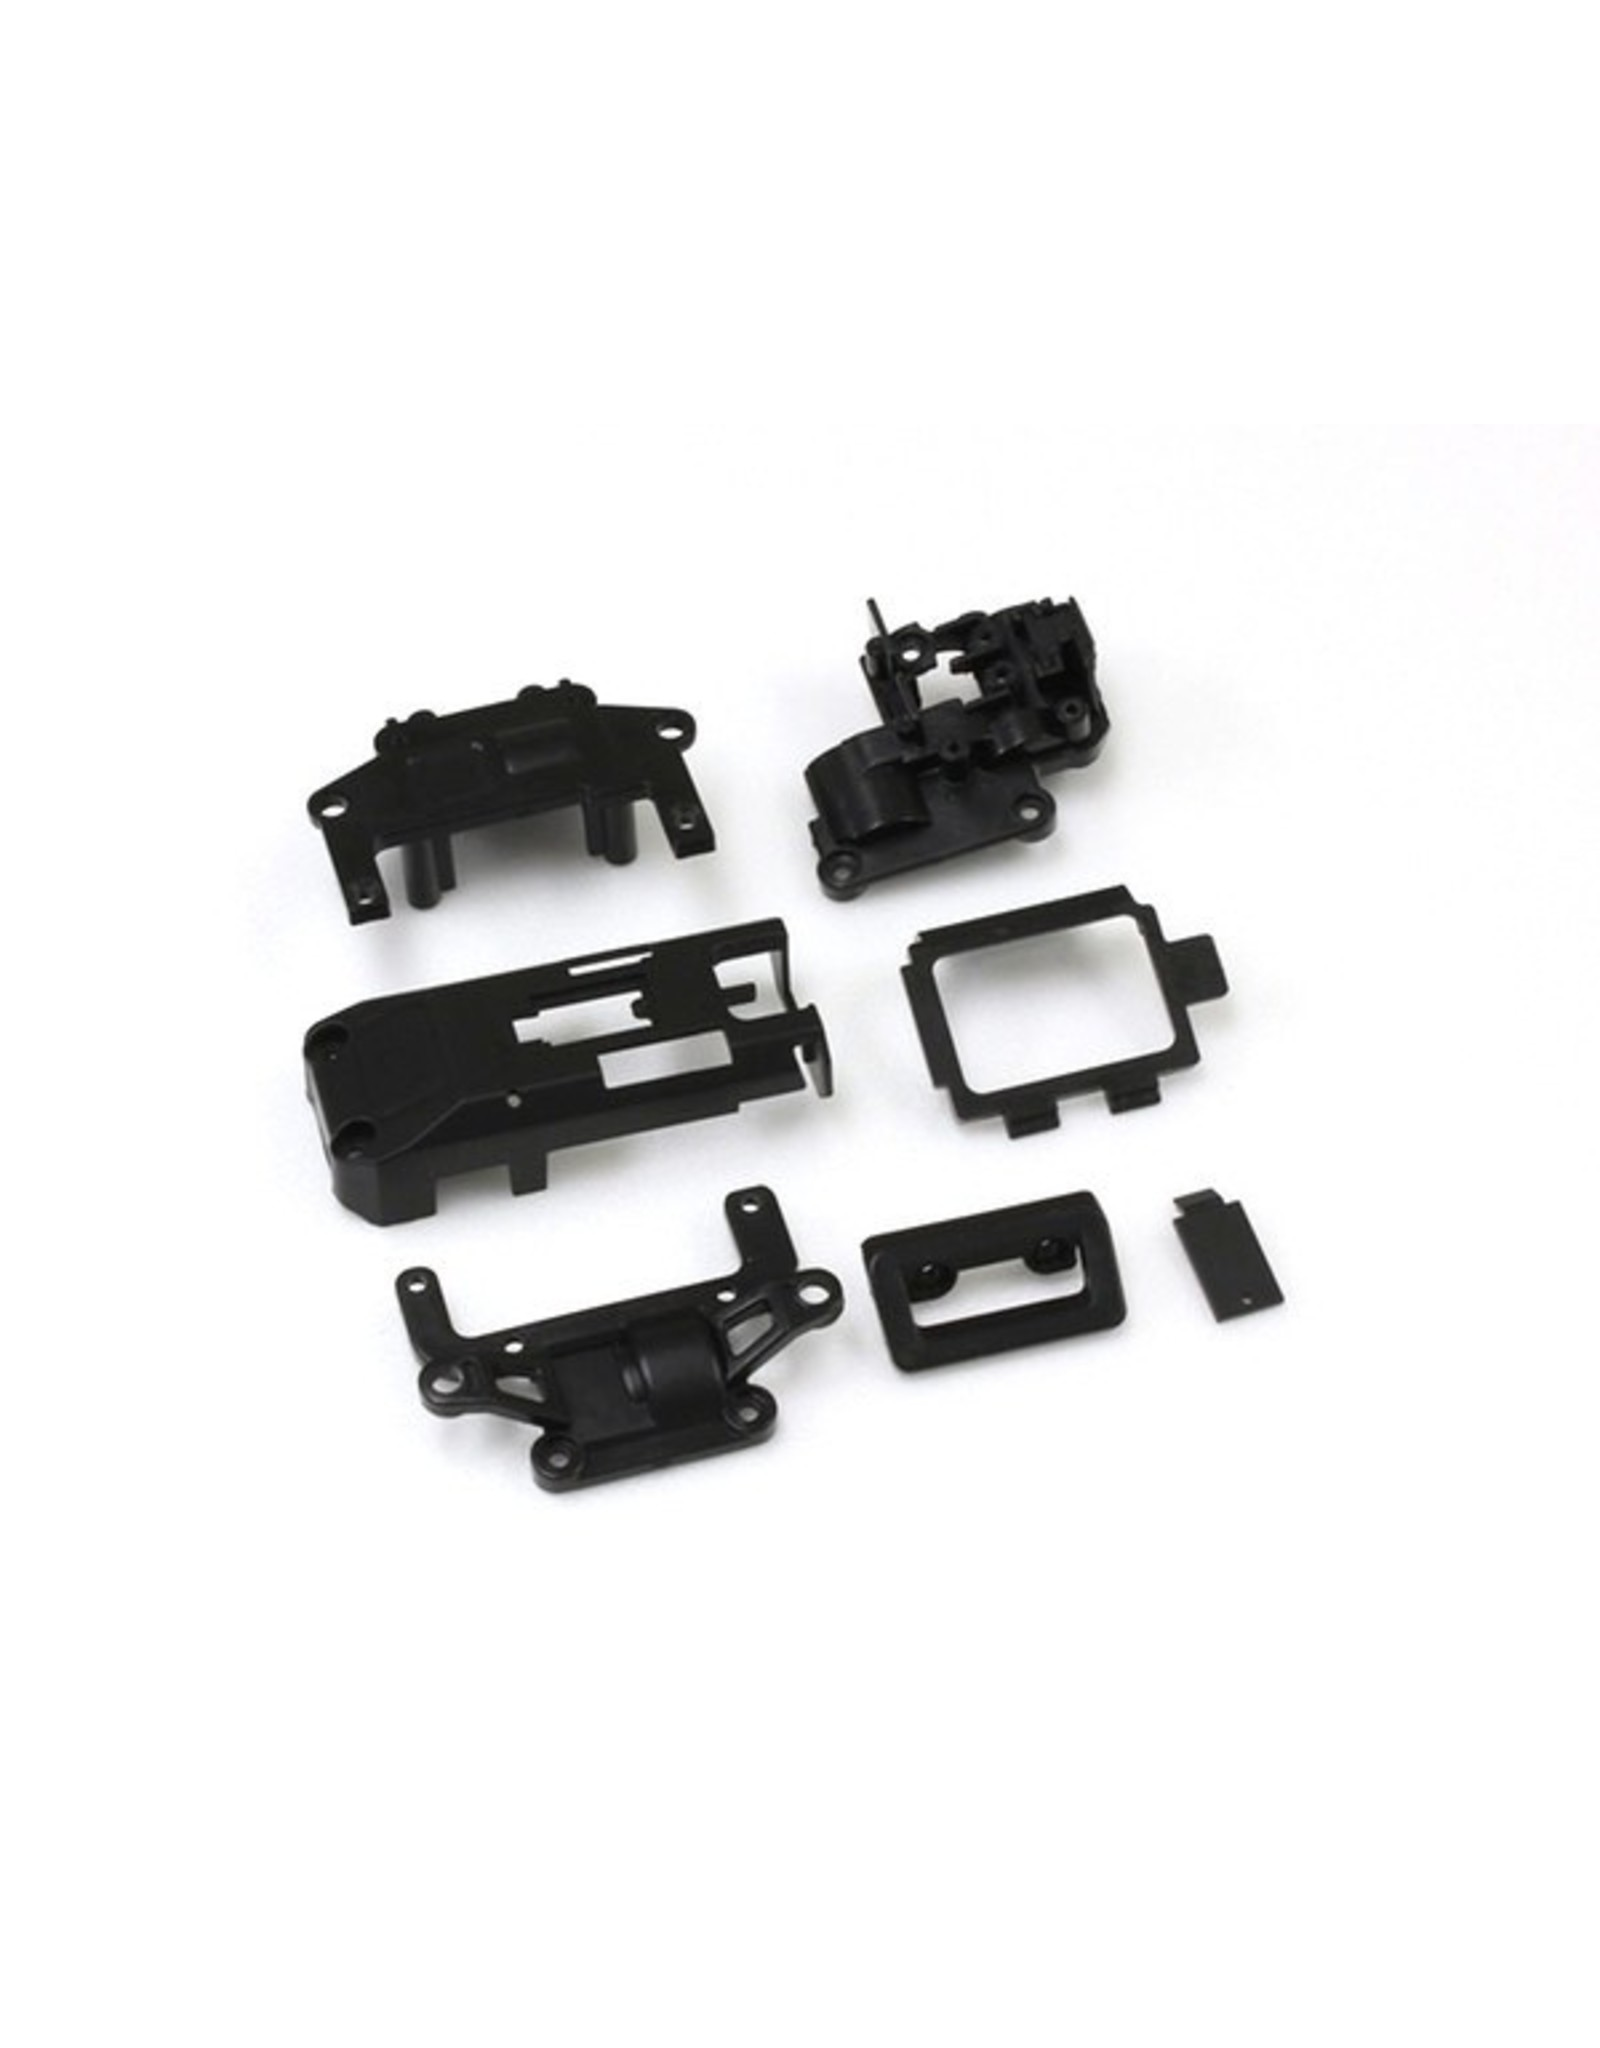 Kyosho Rear Main Chassis Set (AWD)  (MD209)